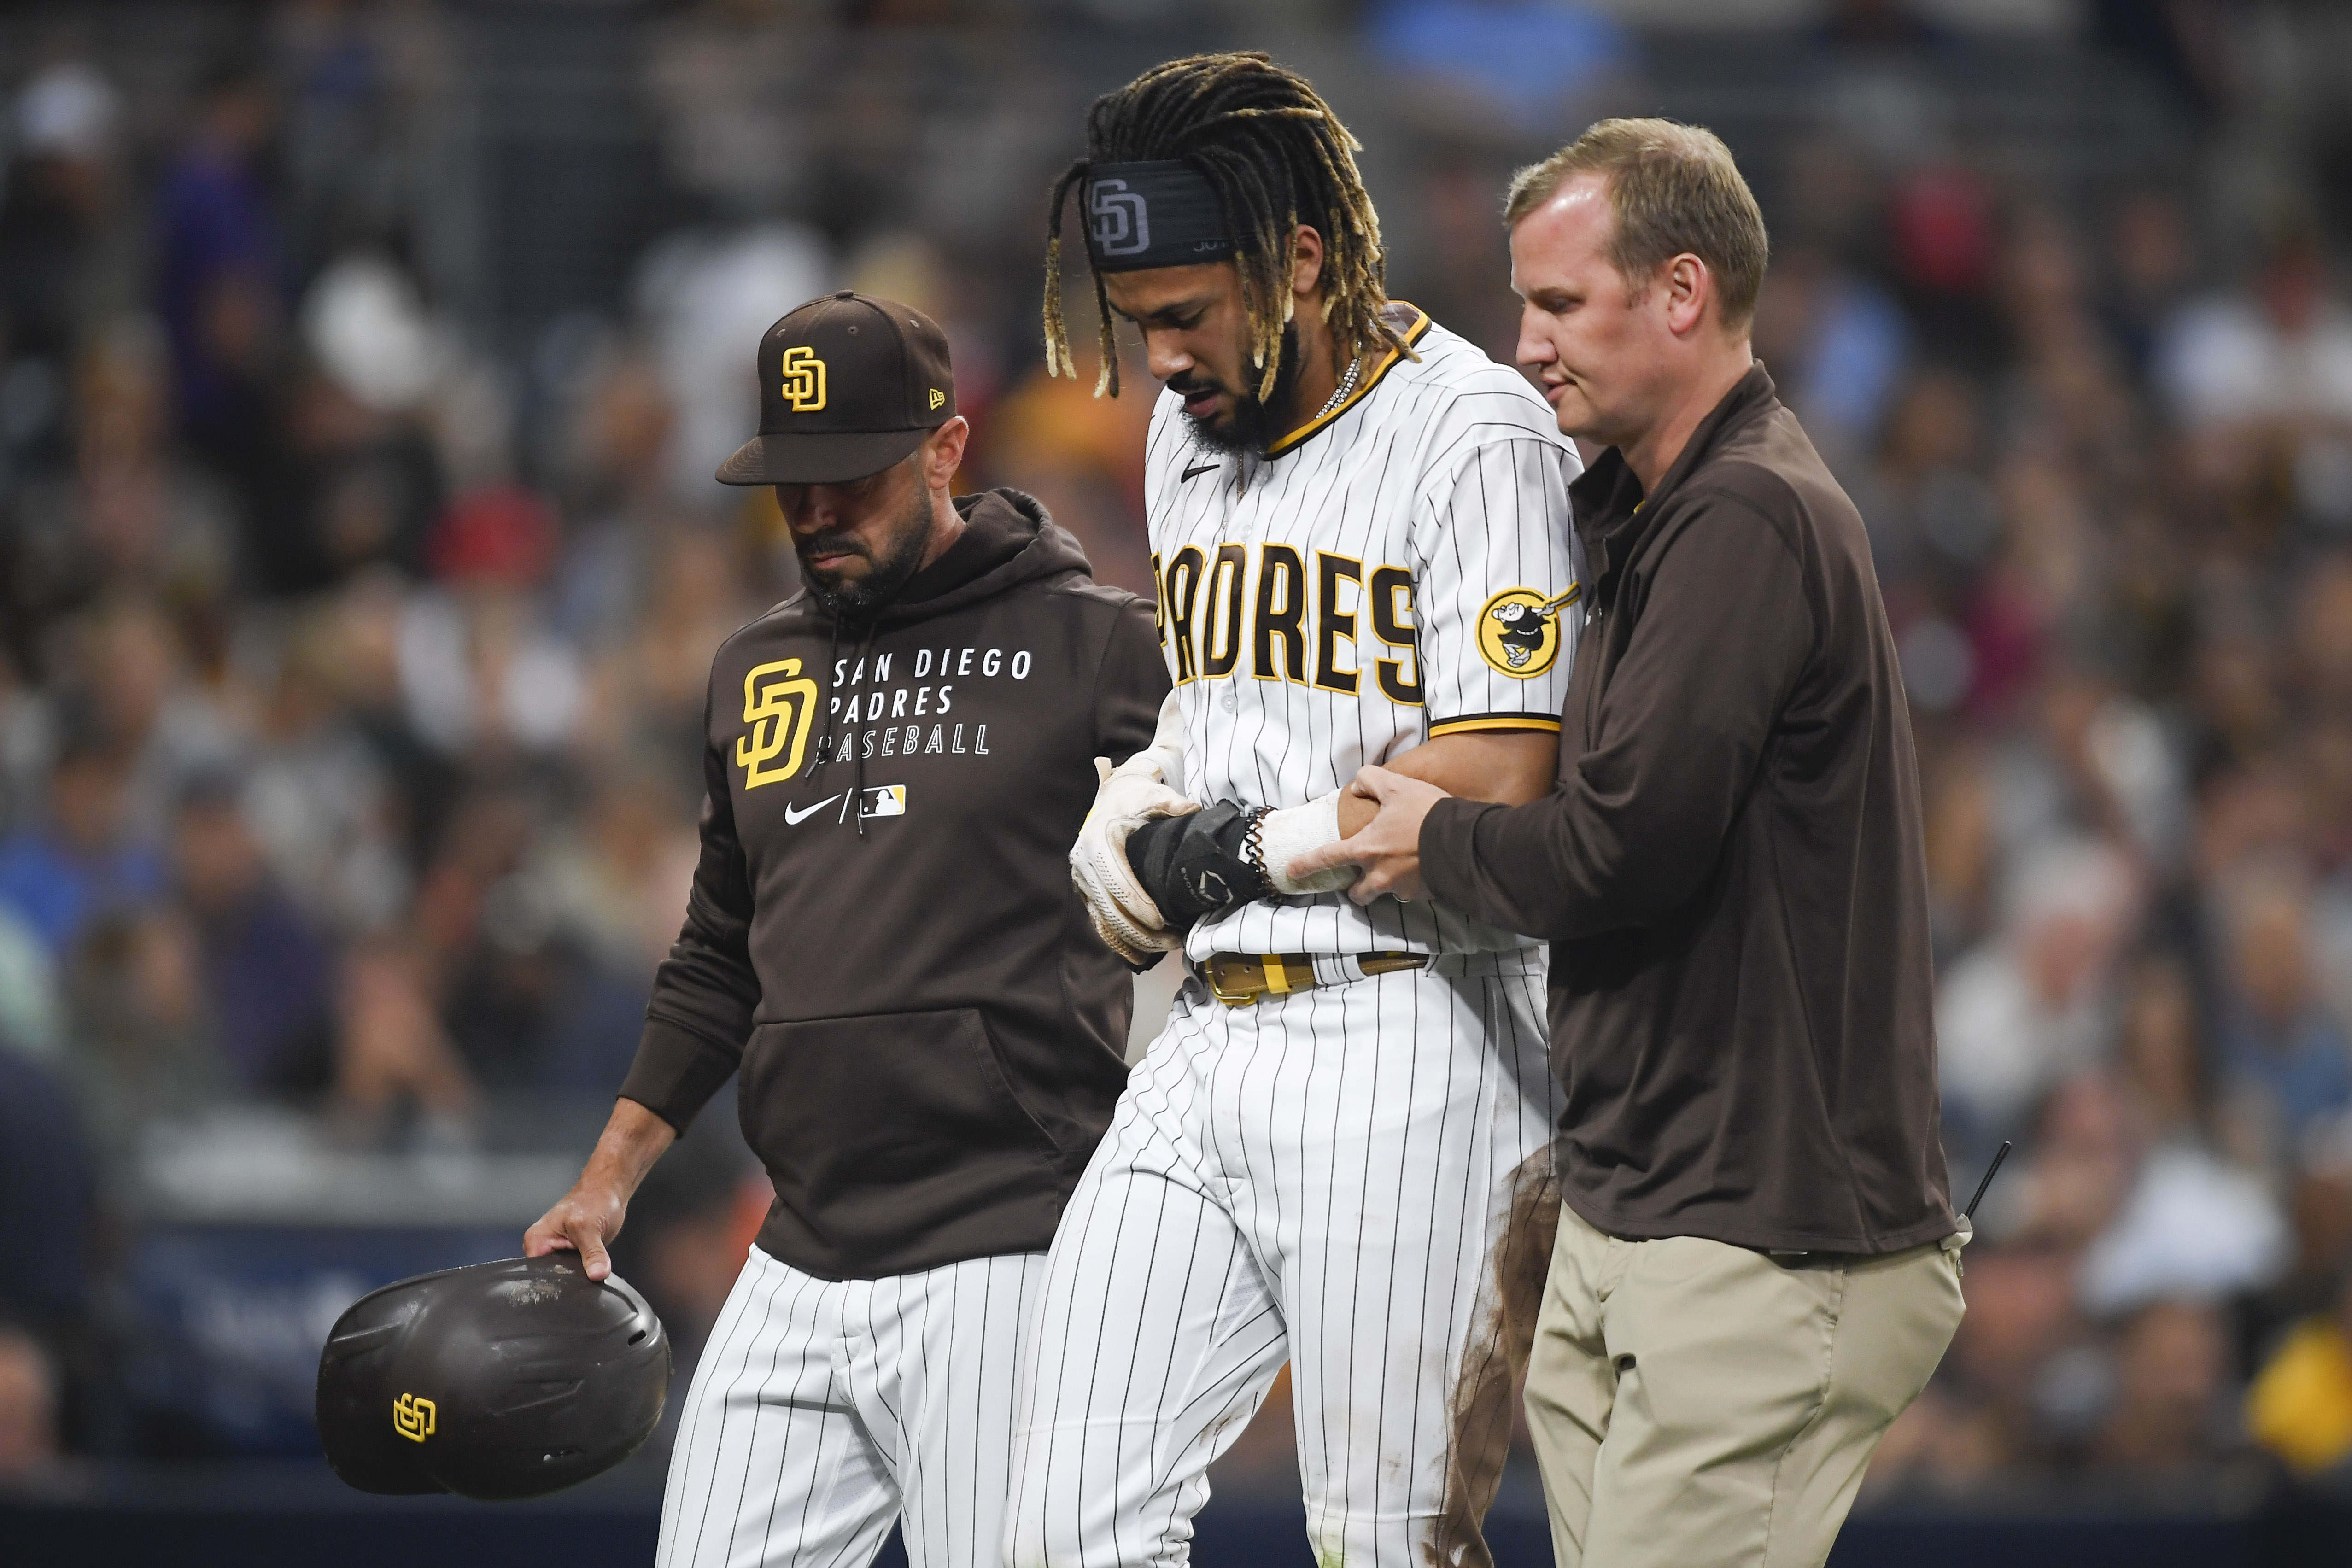 Fernando Tatis Jr. #23 of the San Diego Padres is helped off the field by manager Jayce Tingler and a trainer after he was injured during the first inning of a baseball game against the Colorado Rockies at Petco Park on July 30, 2021 in San Diego, California.